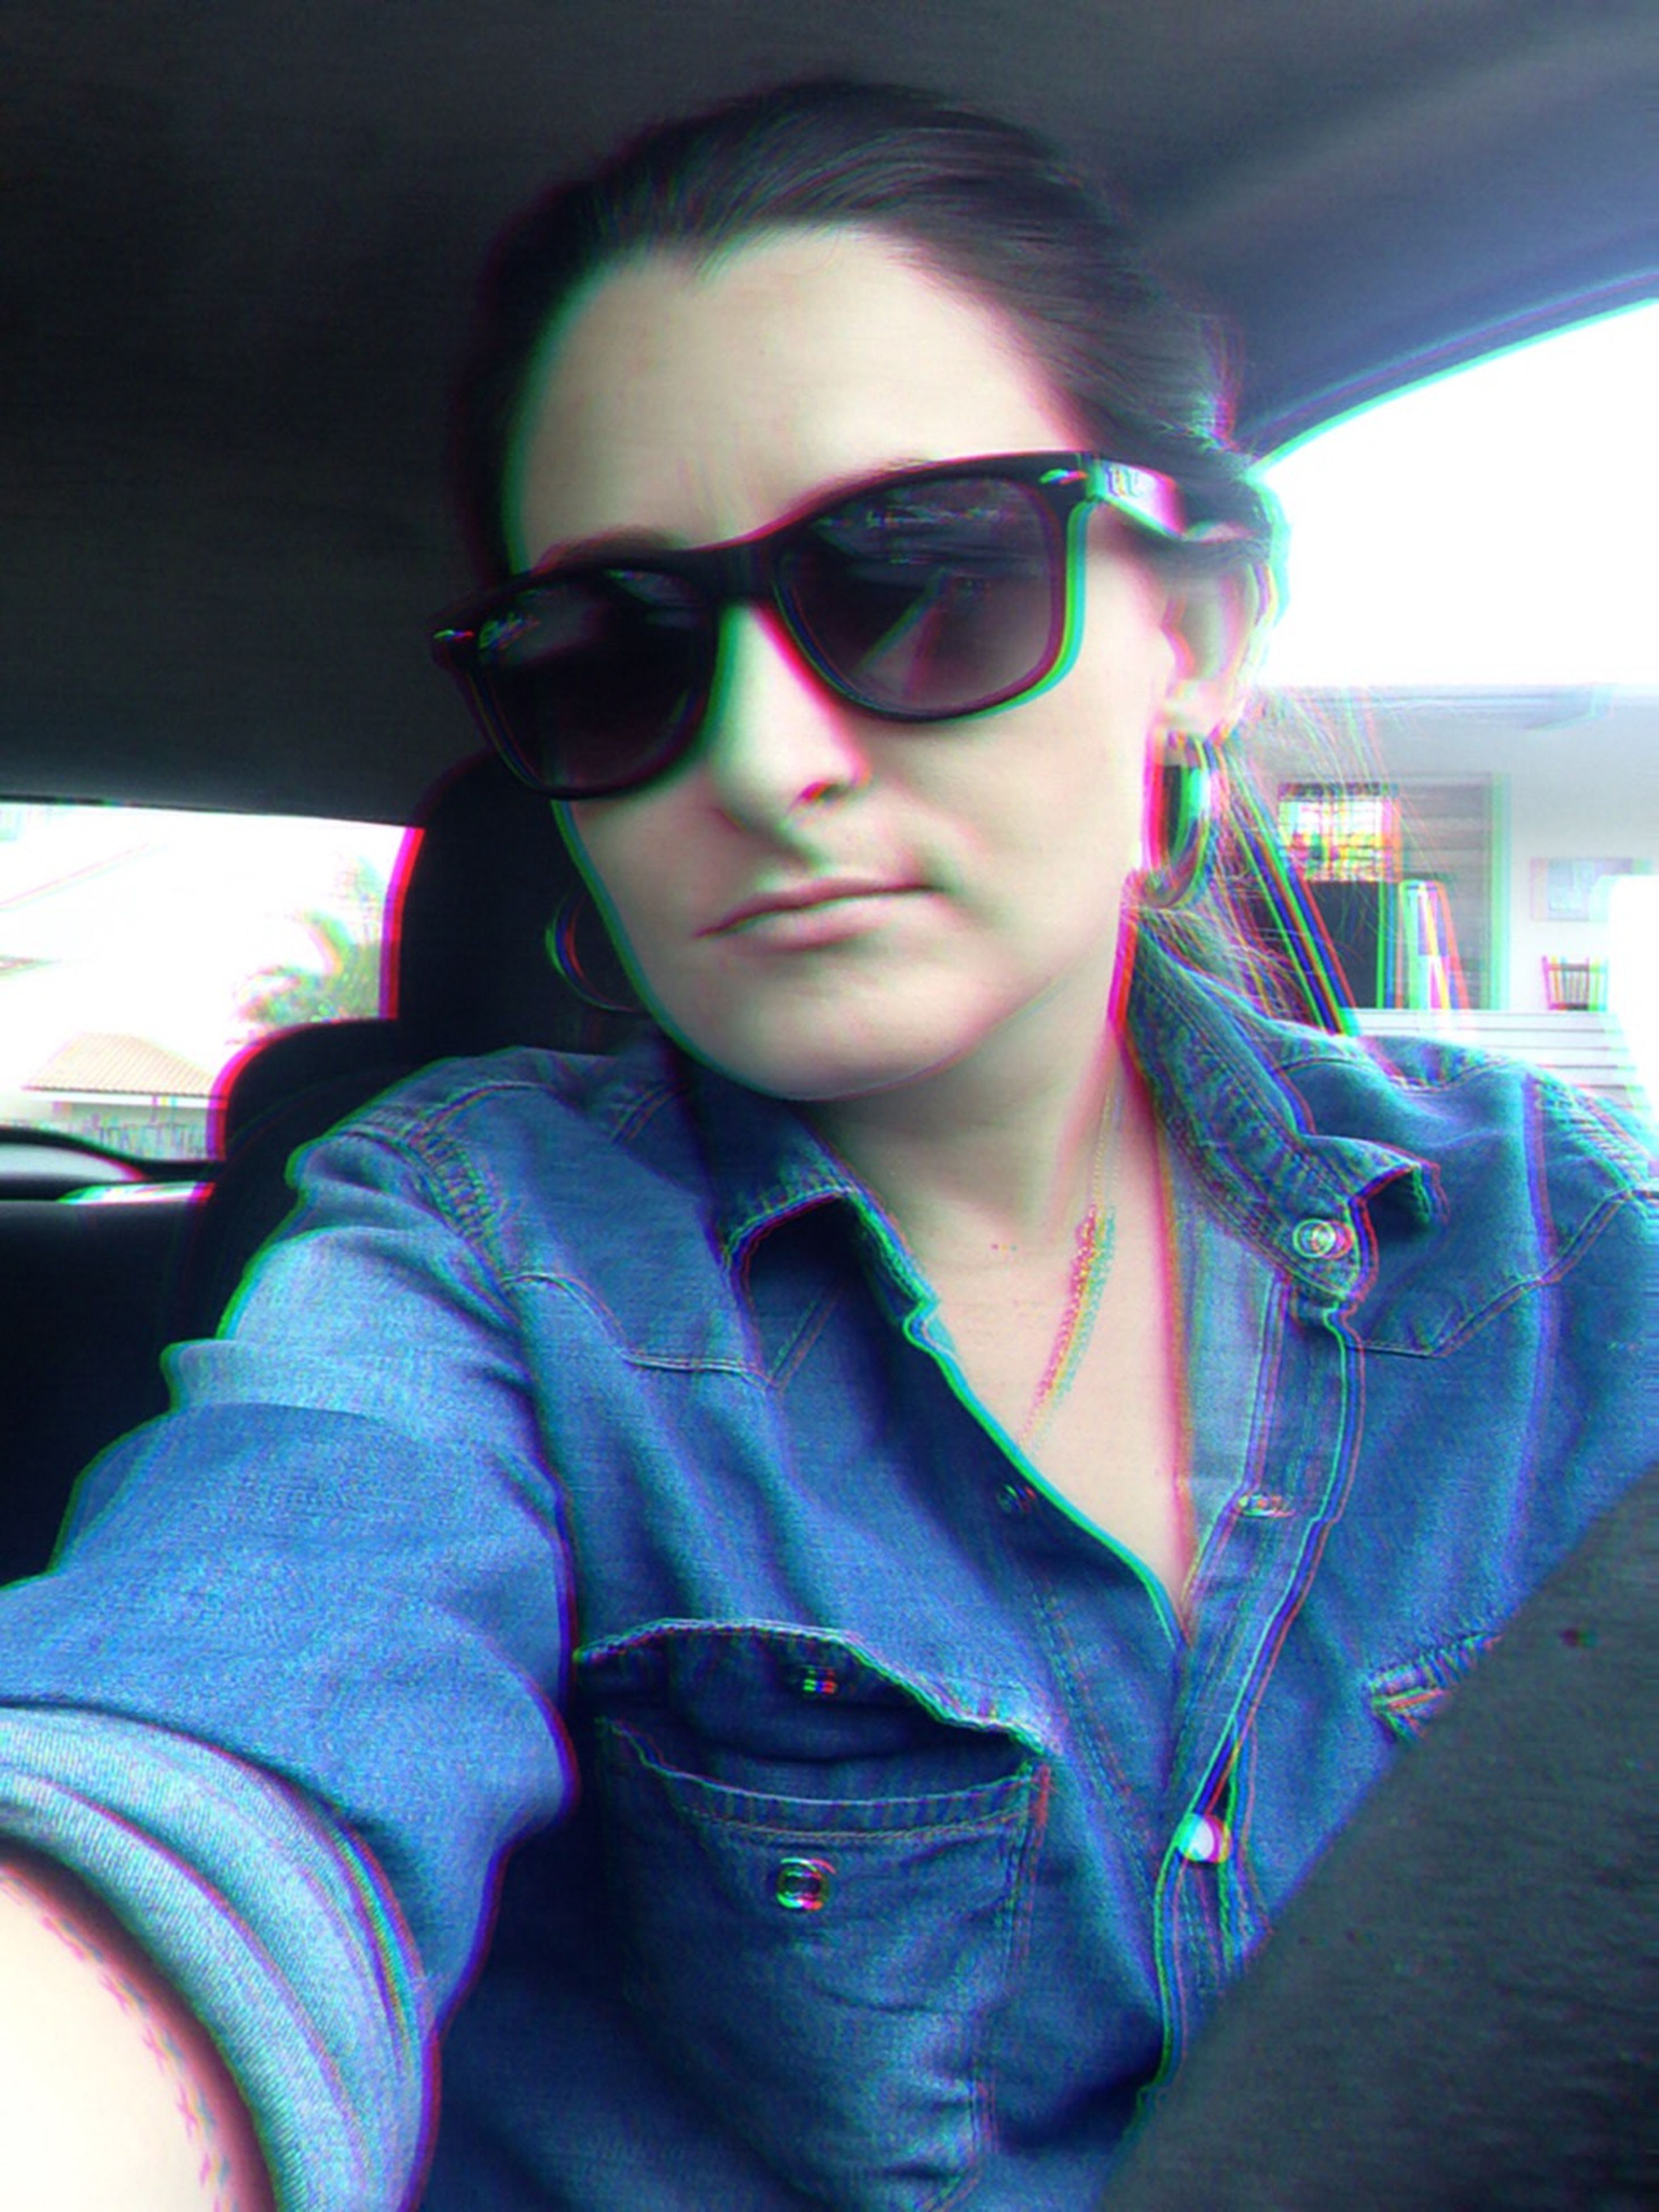 looking at camera, portrait, lifestyles, young adult, casual clothing, person, front view, leisure activity, sunglasses, indoors, transportation, headshot, mode of transport, car, eyeglasses, smiling, vehicle interior, land vehicle